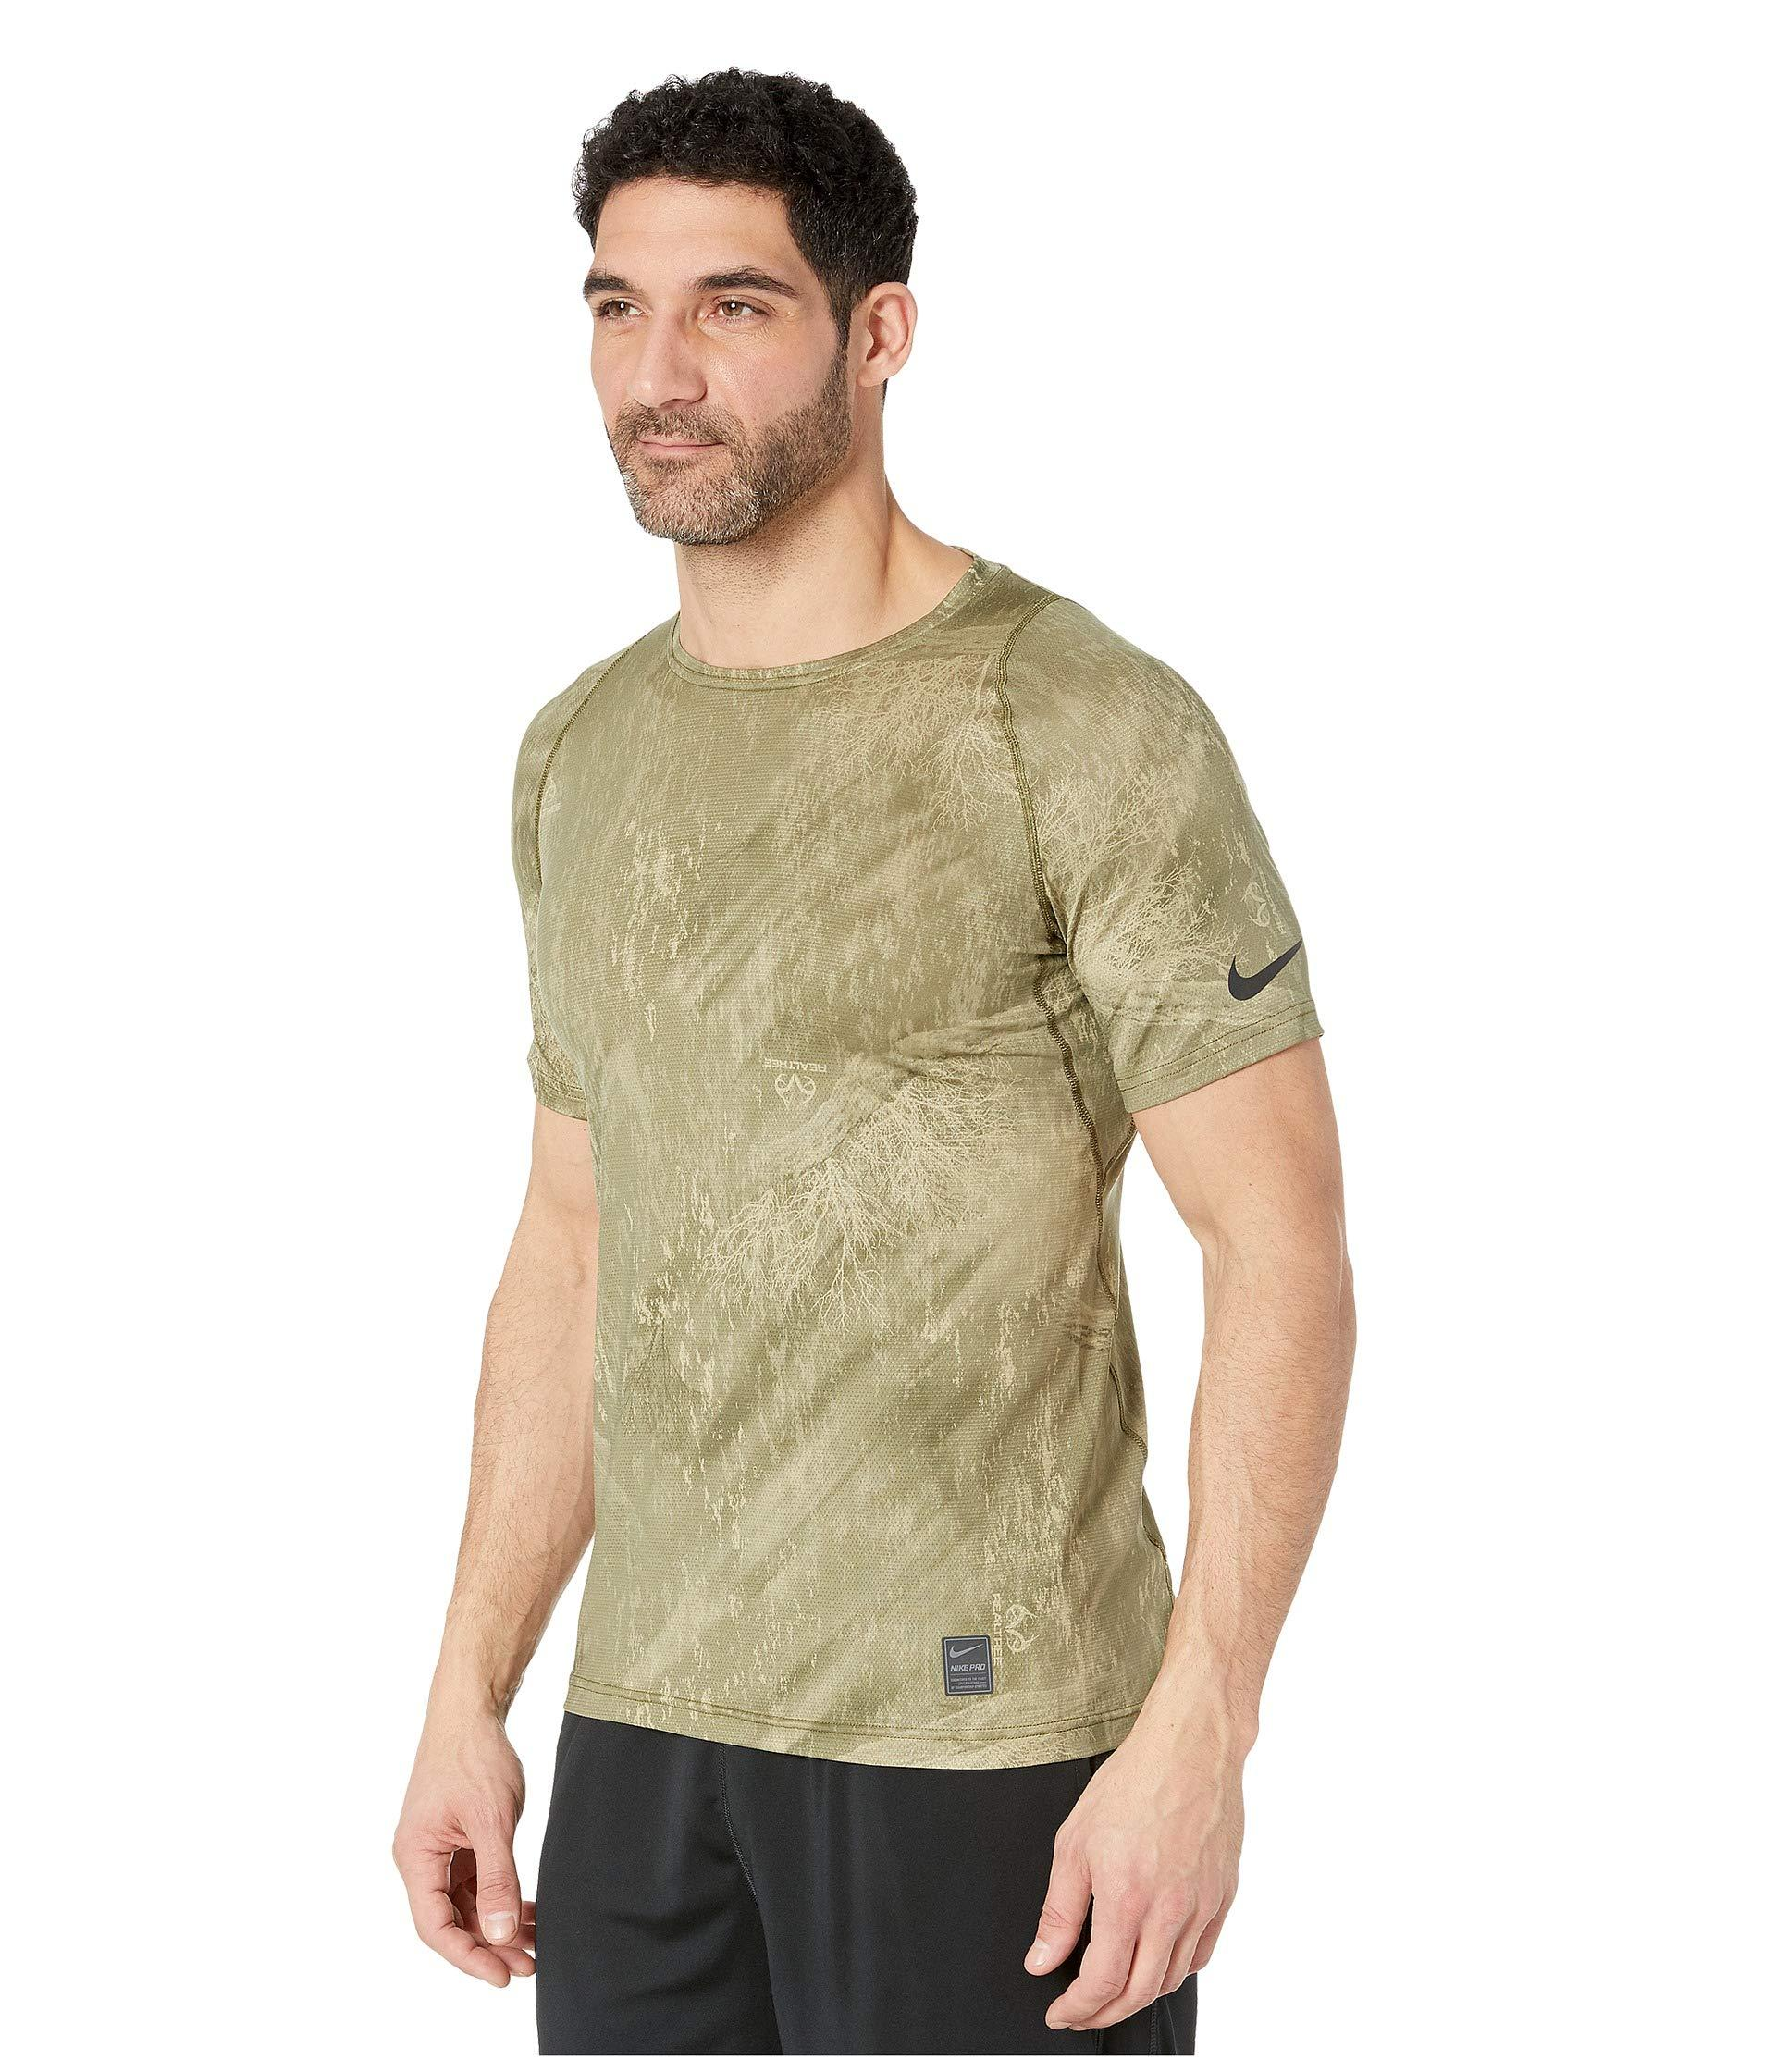 c42bfb9fe99f Lyst - Nike Top Short Sleeve Fitted Special Forces Realtree in Green for Men